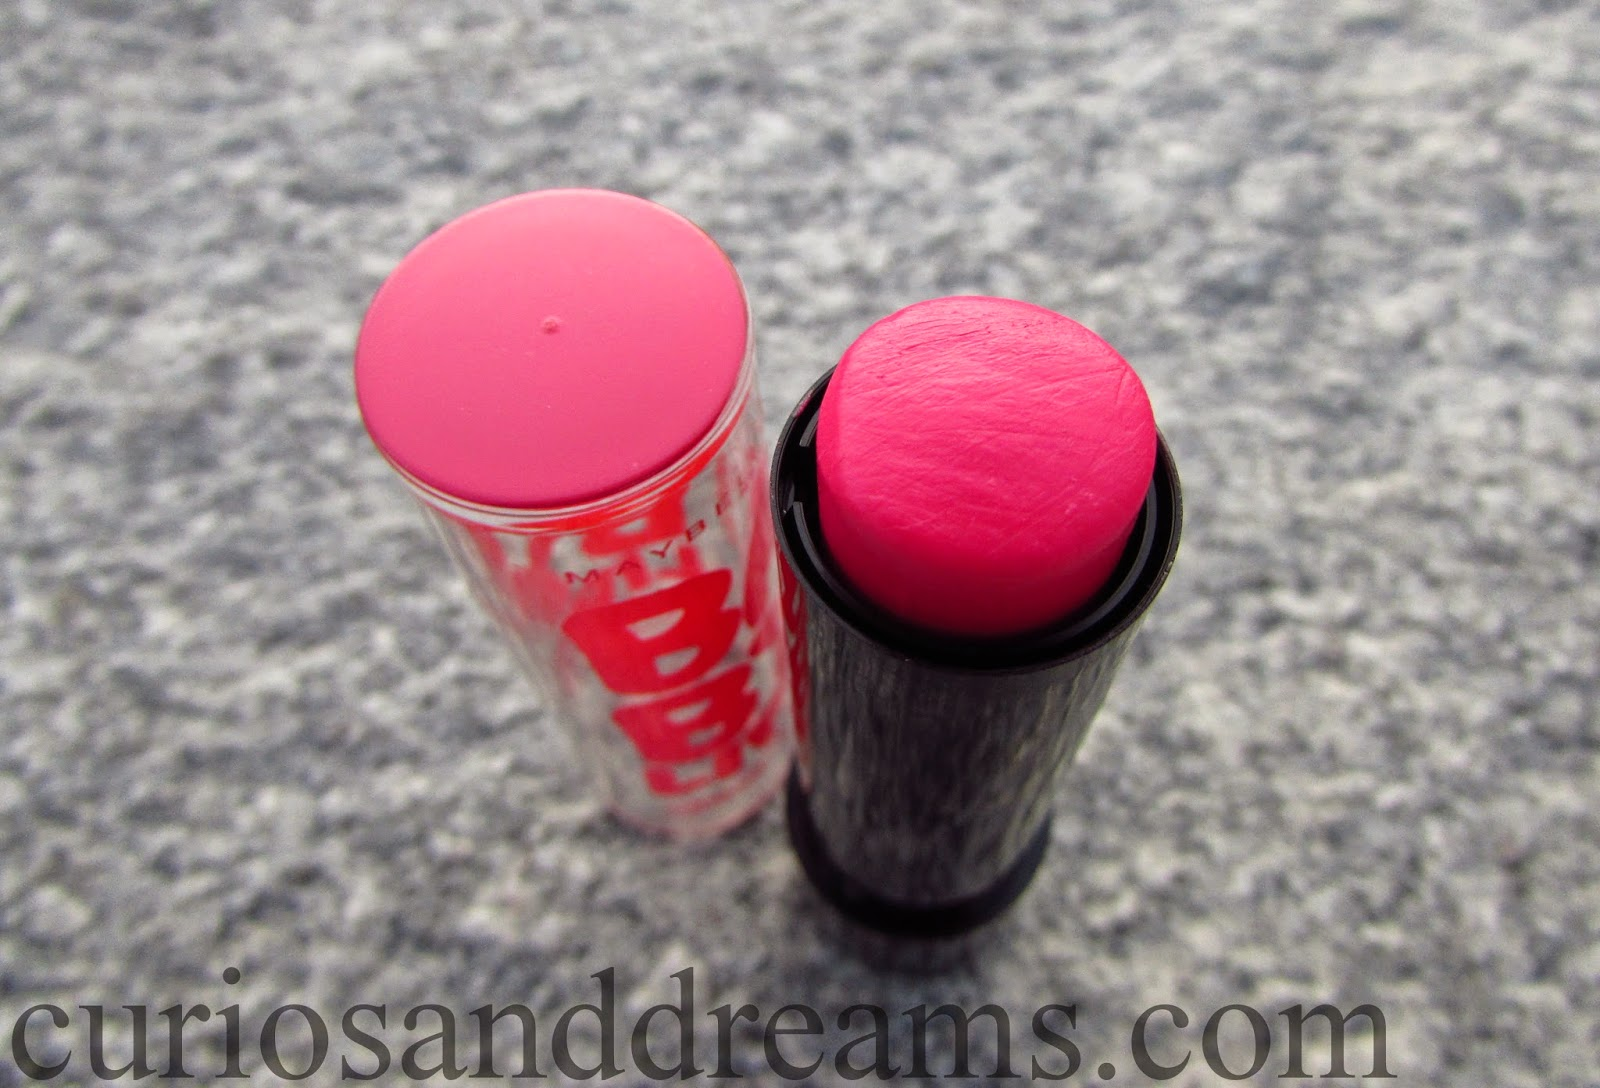 Maybelline Baby Lips Electro Pop Lip Balm Pink Shock Review, Maybelline Baby Lips Electro Pop Pink Shock Review, Maybelline Pink Shock